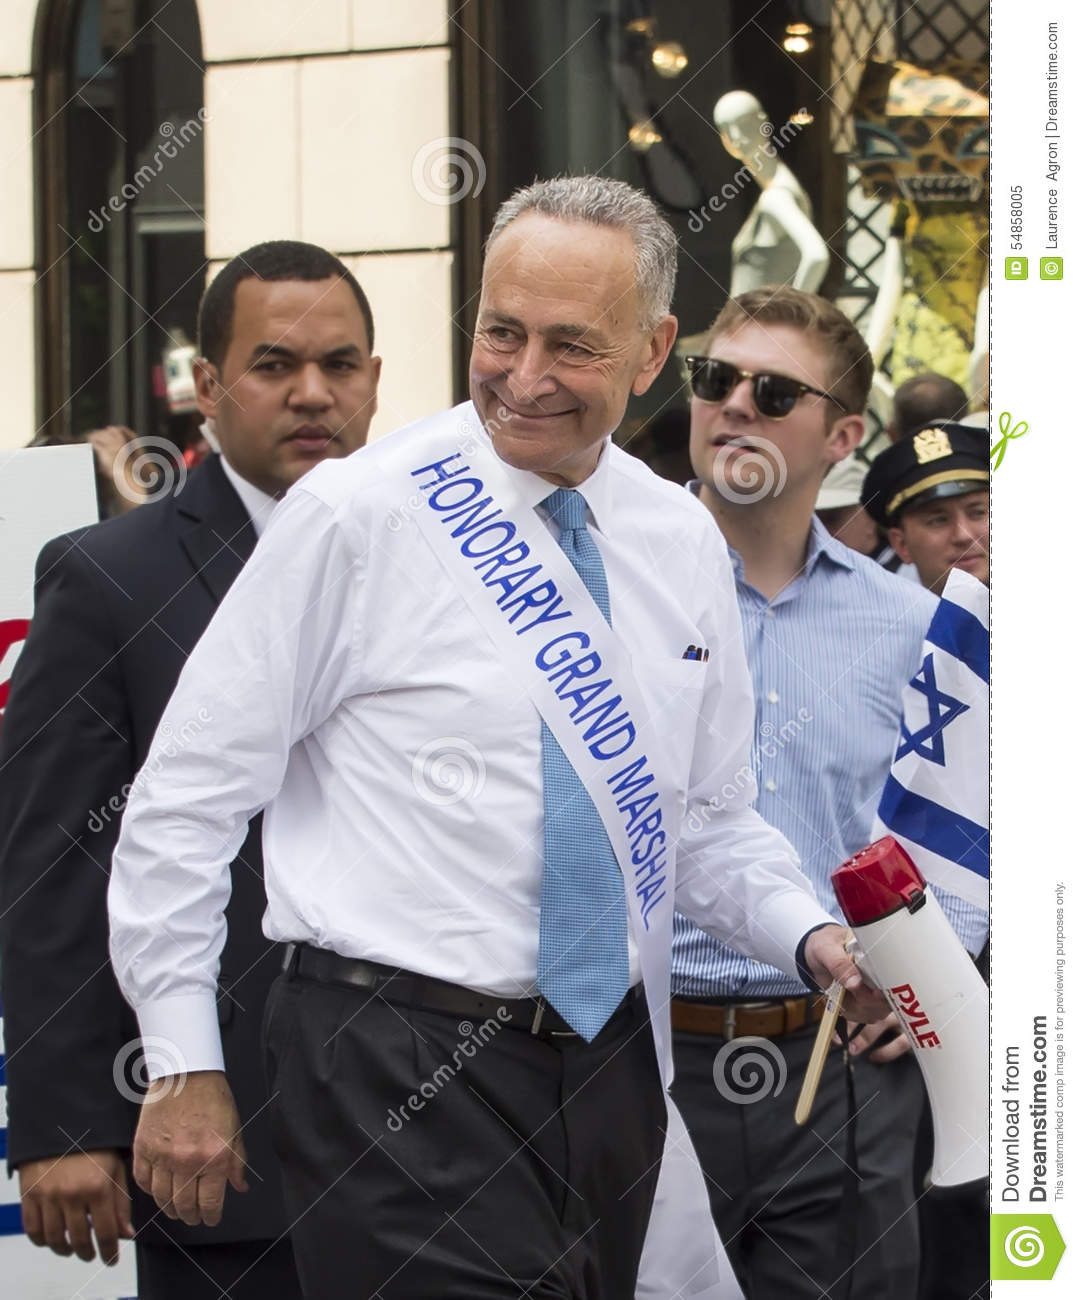 Charles Schumer bij 2015 viert Israel Parade in New York